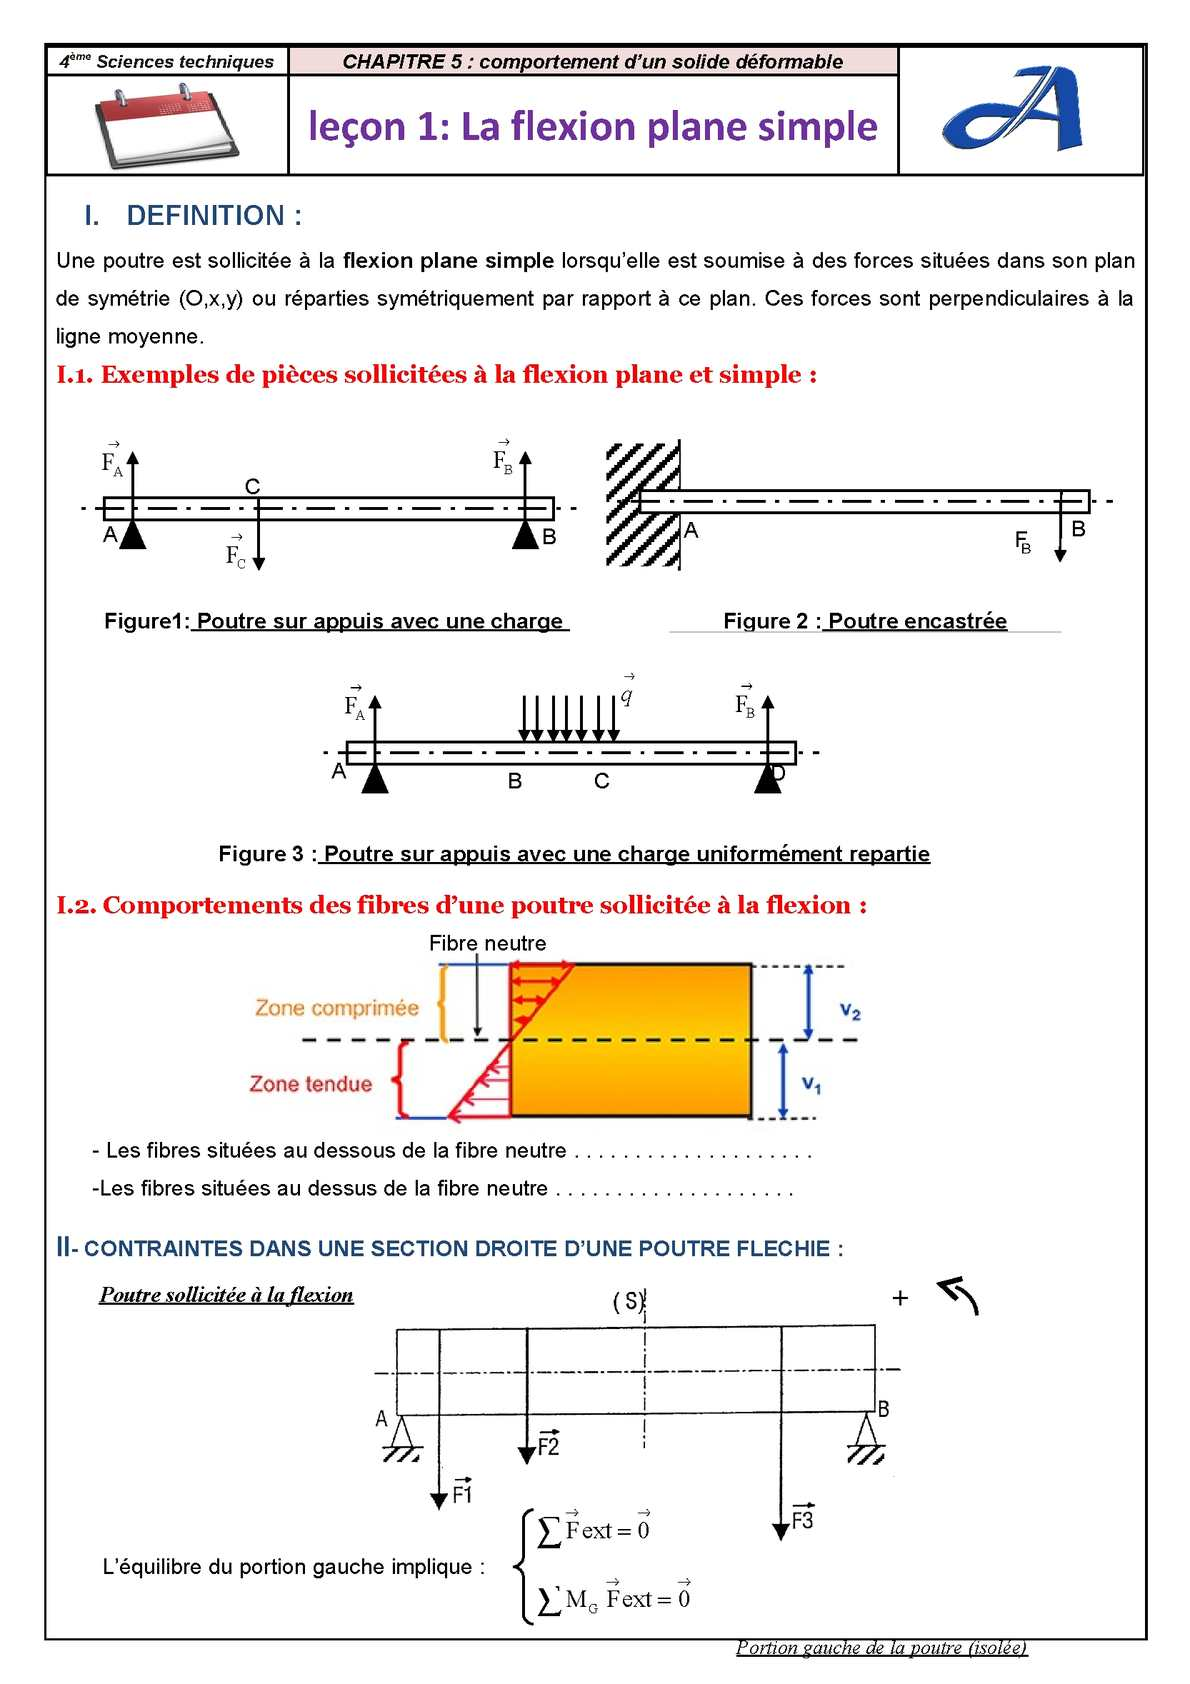 Calam o la flexion plane simple - Definition d une poutre ...